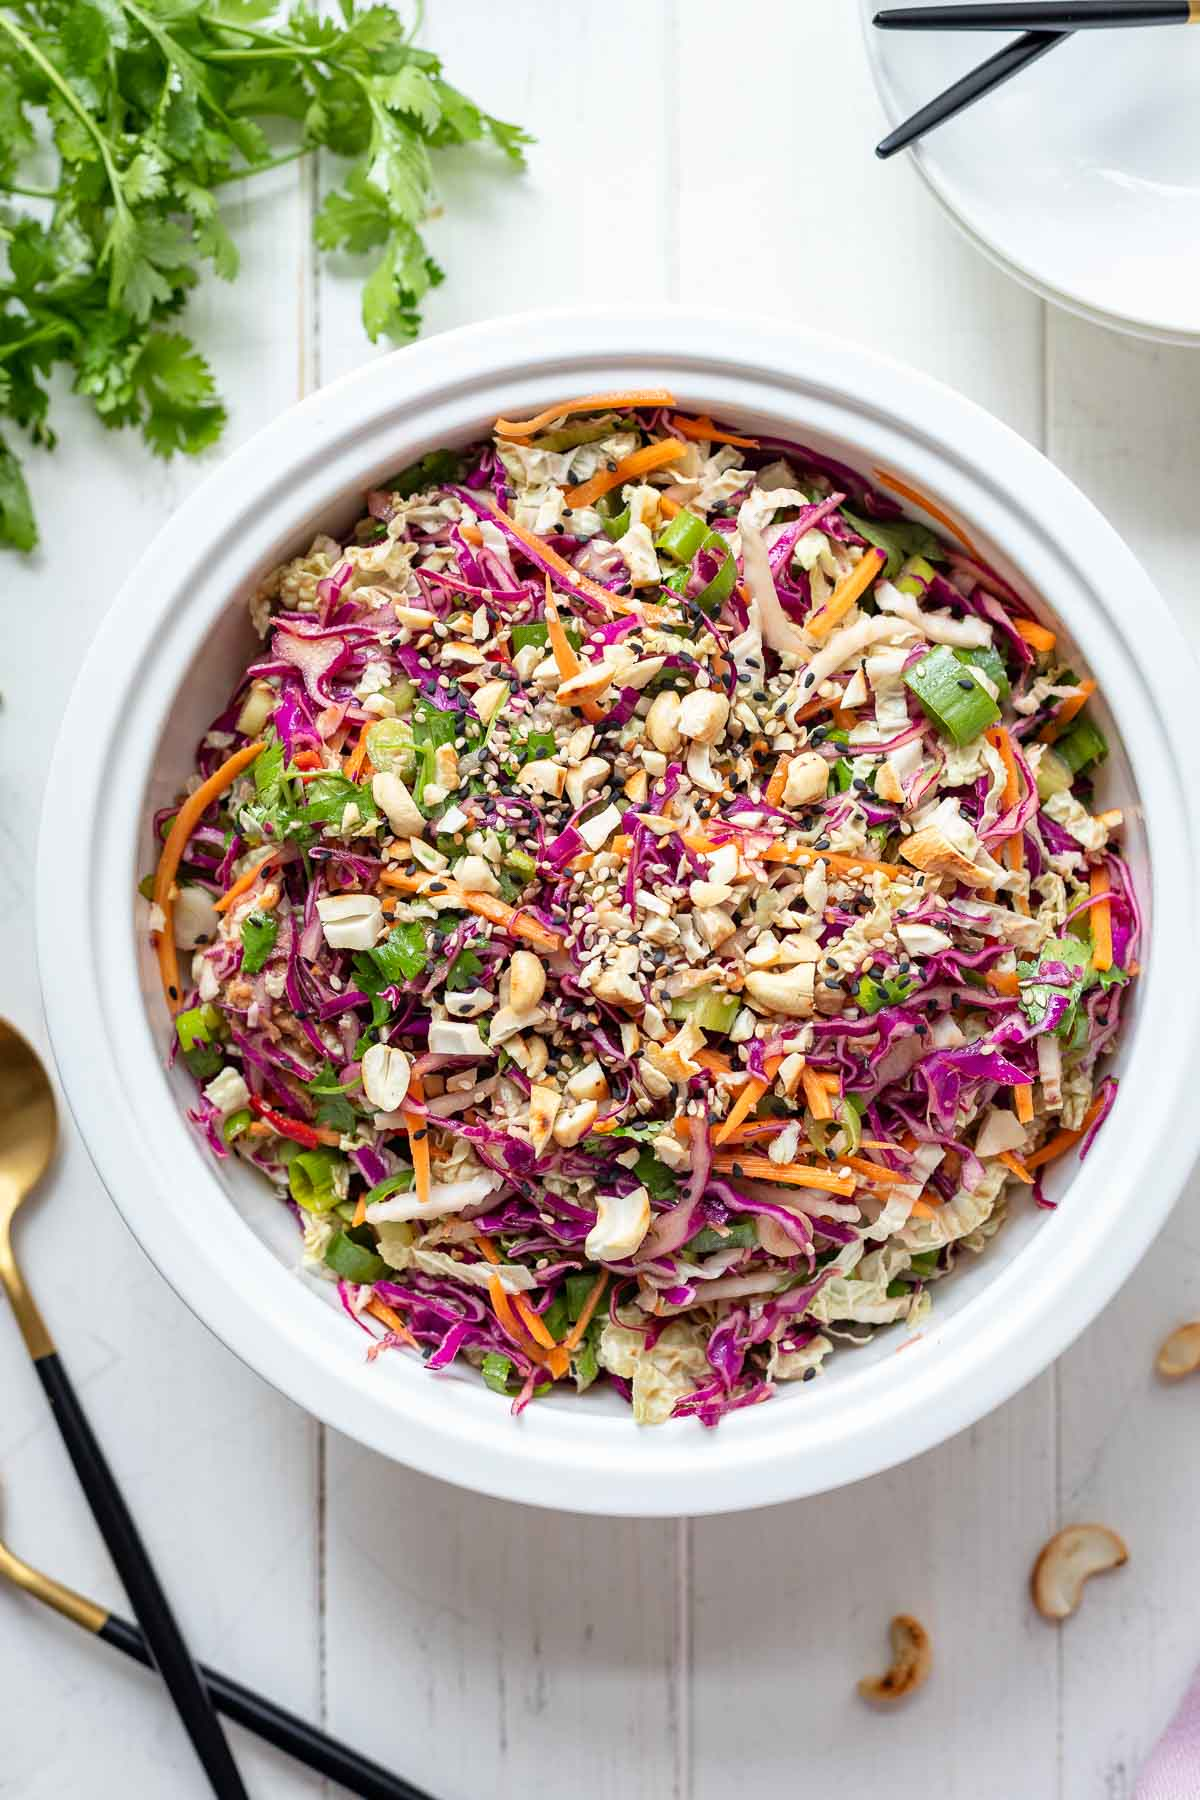 Asian Coleslaw with red and white cabbage, carrot, spring onions and cilantro